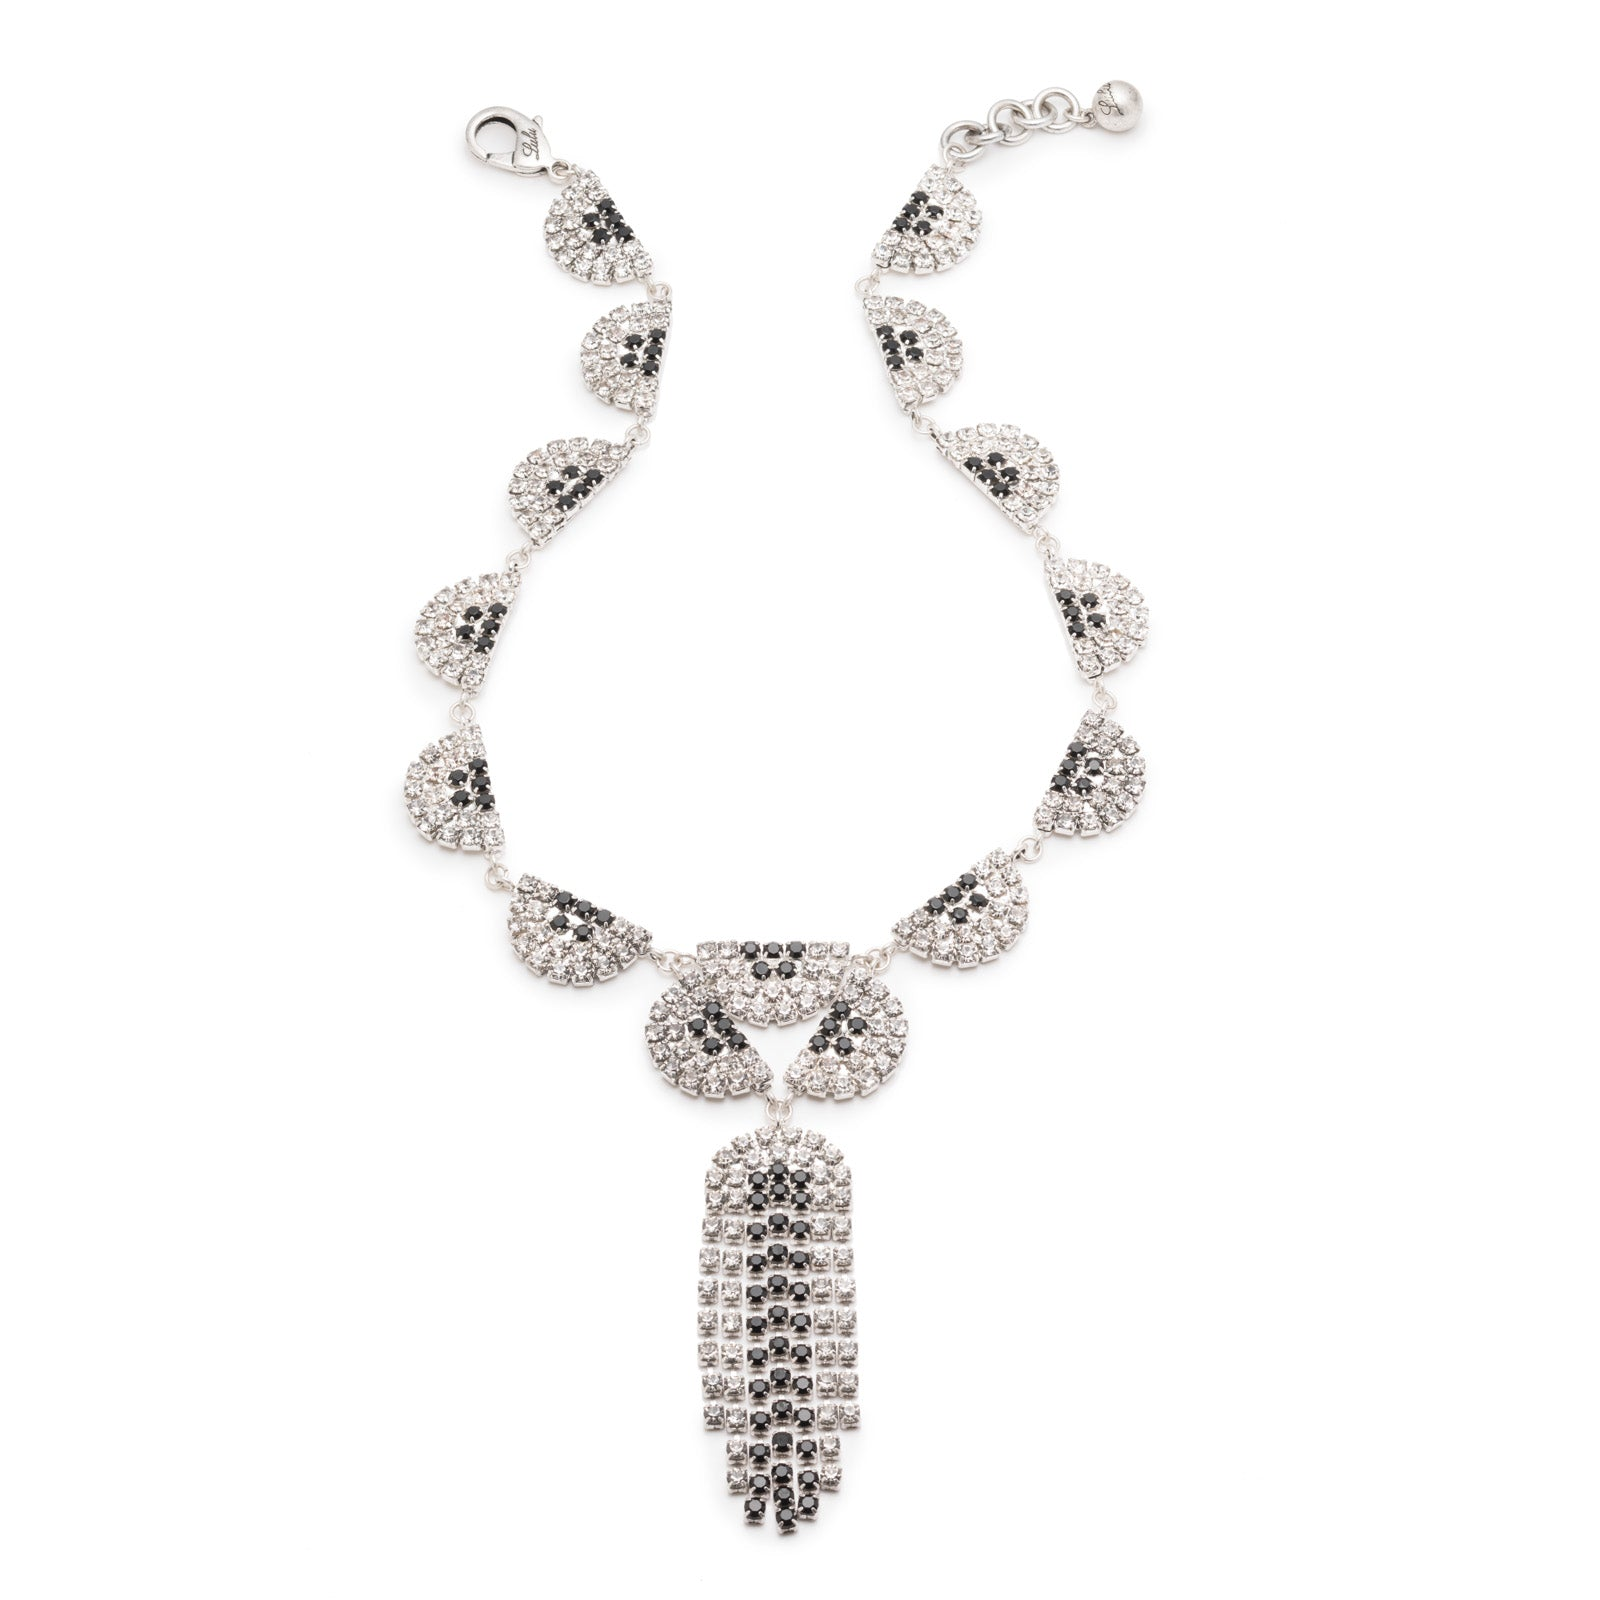 Synth Bib Necklace - Clear